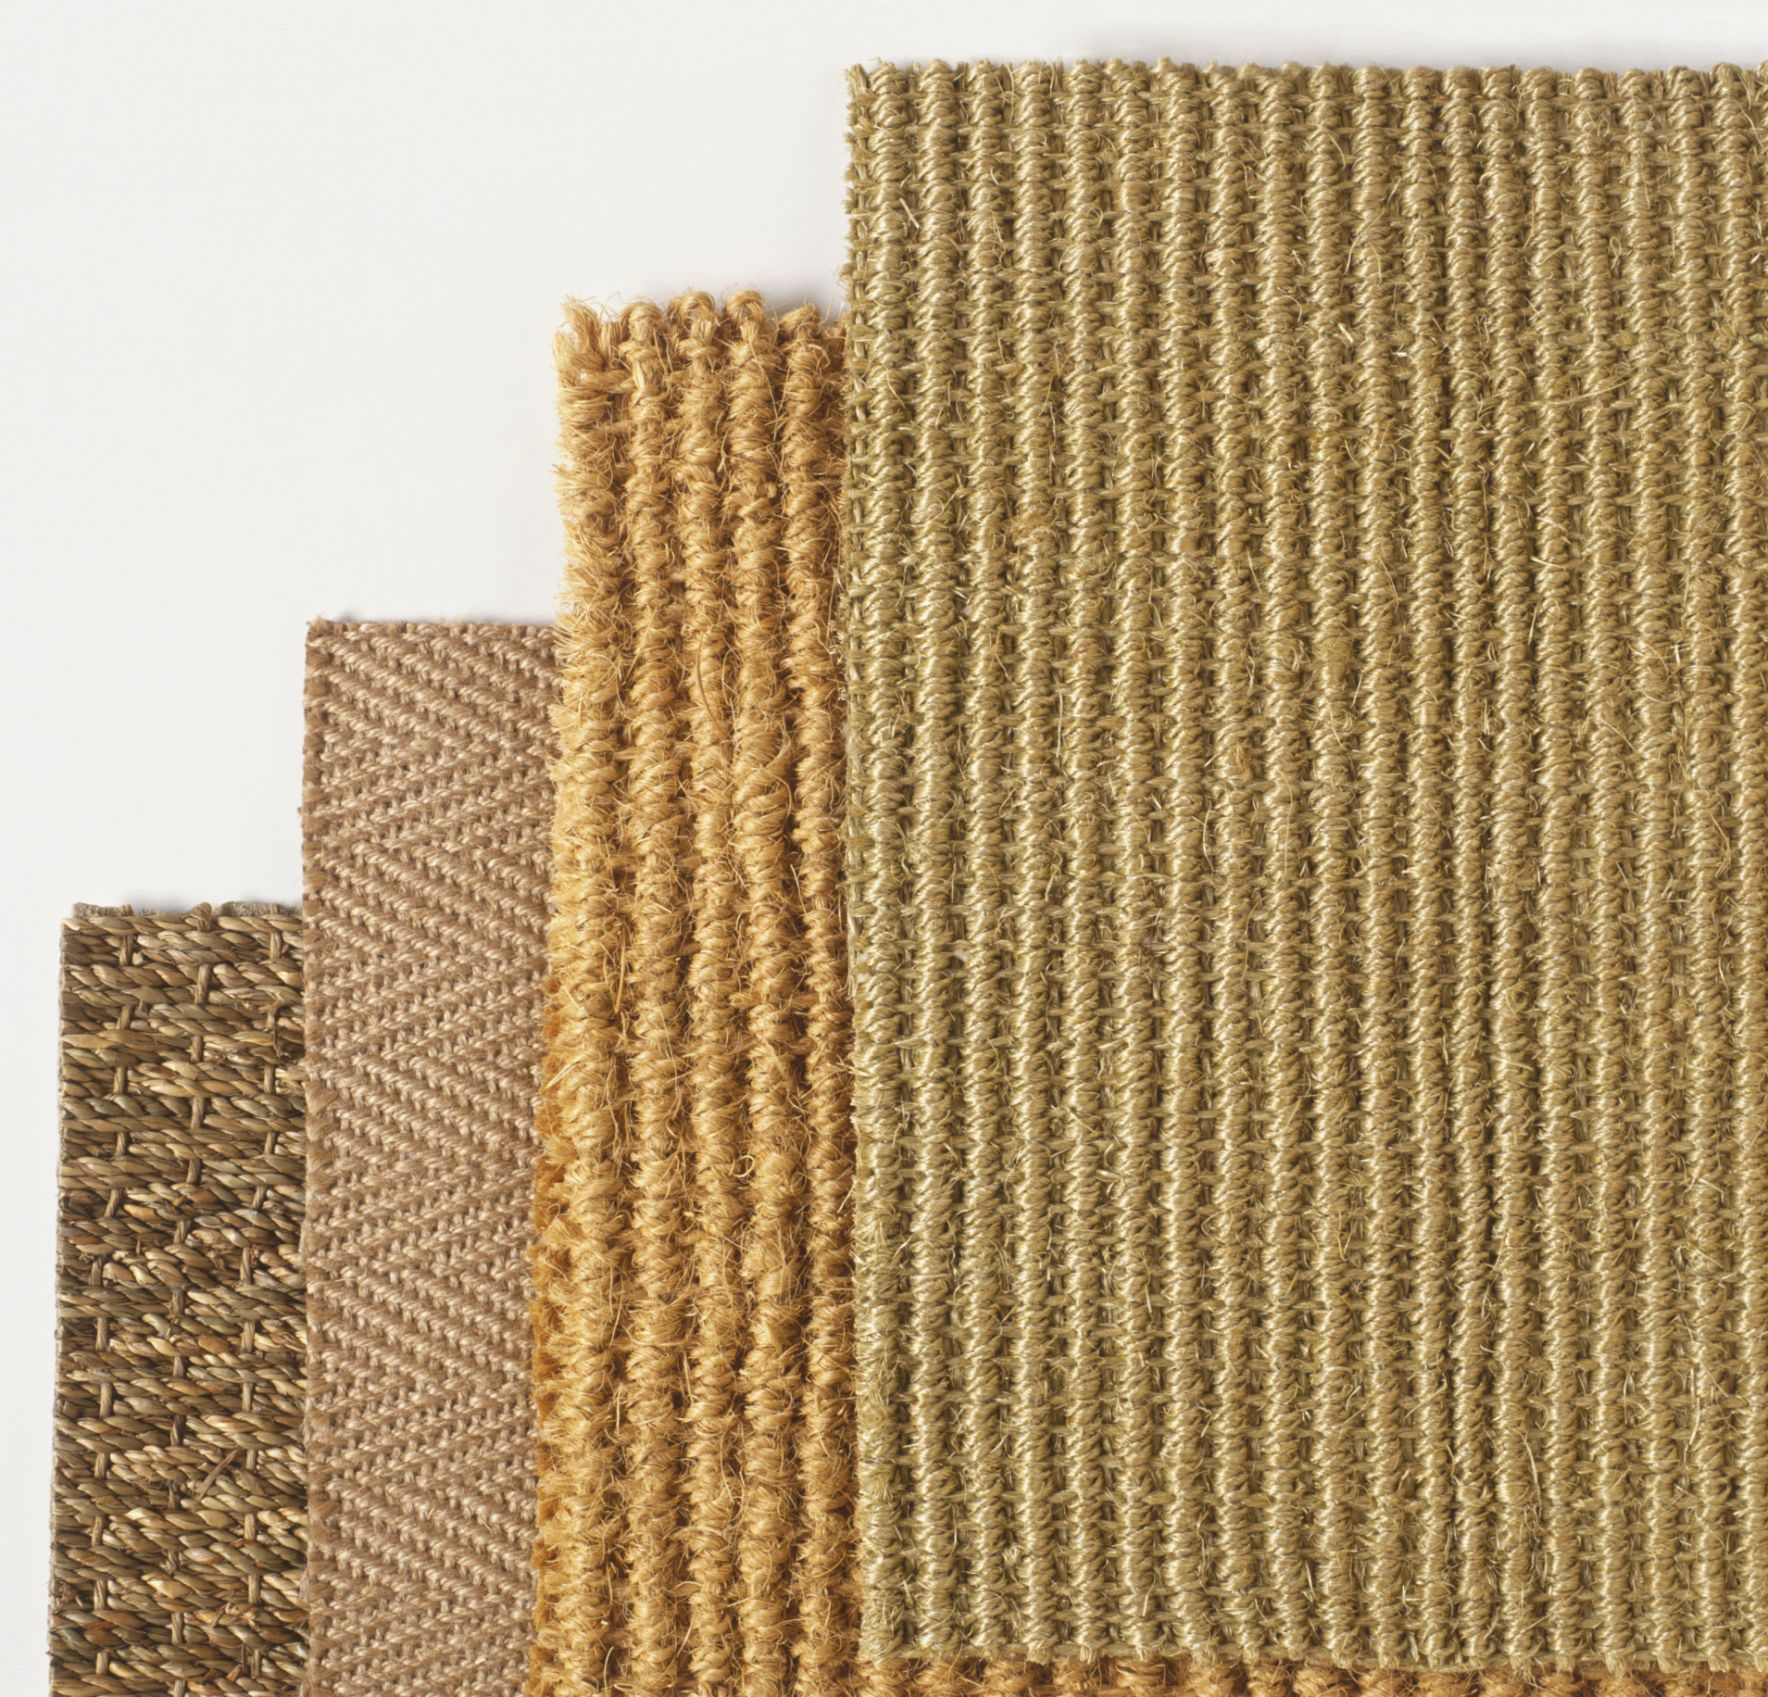 Comparing Synthetic And Natural Carpet Fibers